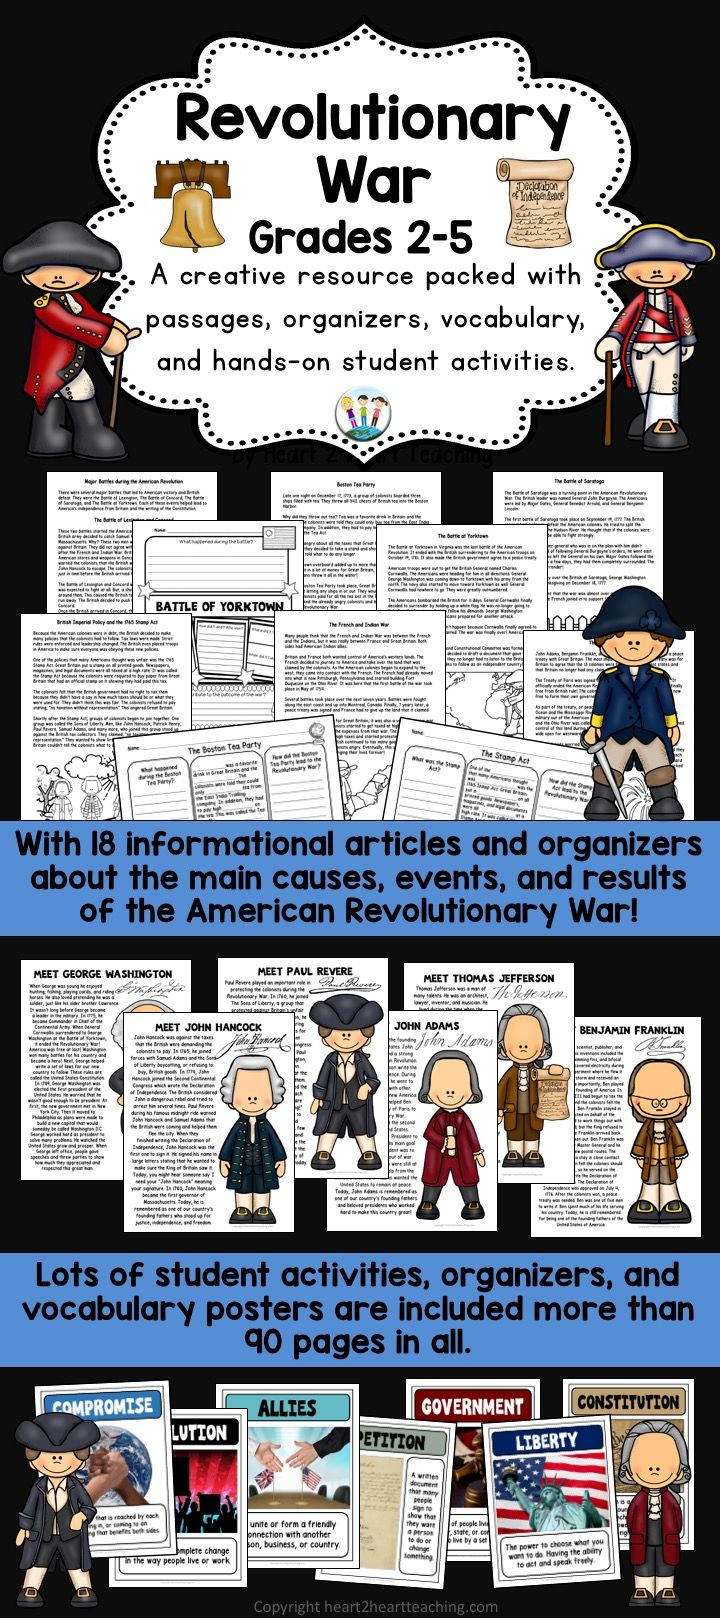 Students will love learning all about the American Revolutionary War with this creative and interactive resource that highlights causes, main events, important people, and results of the Revolutionary War all in one!